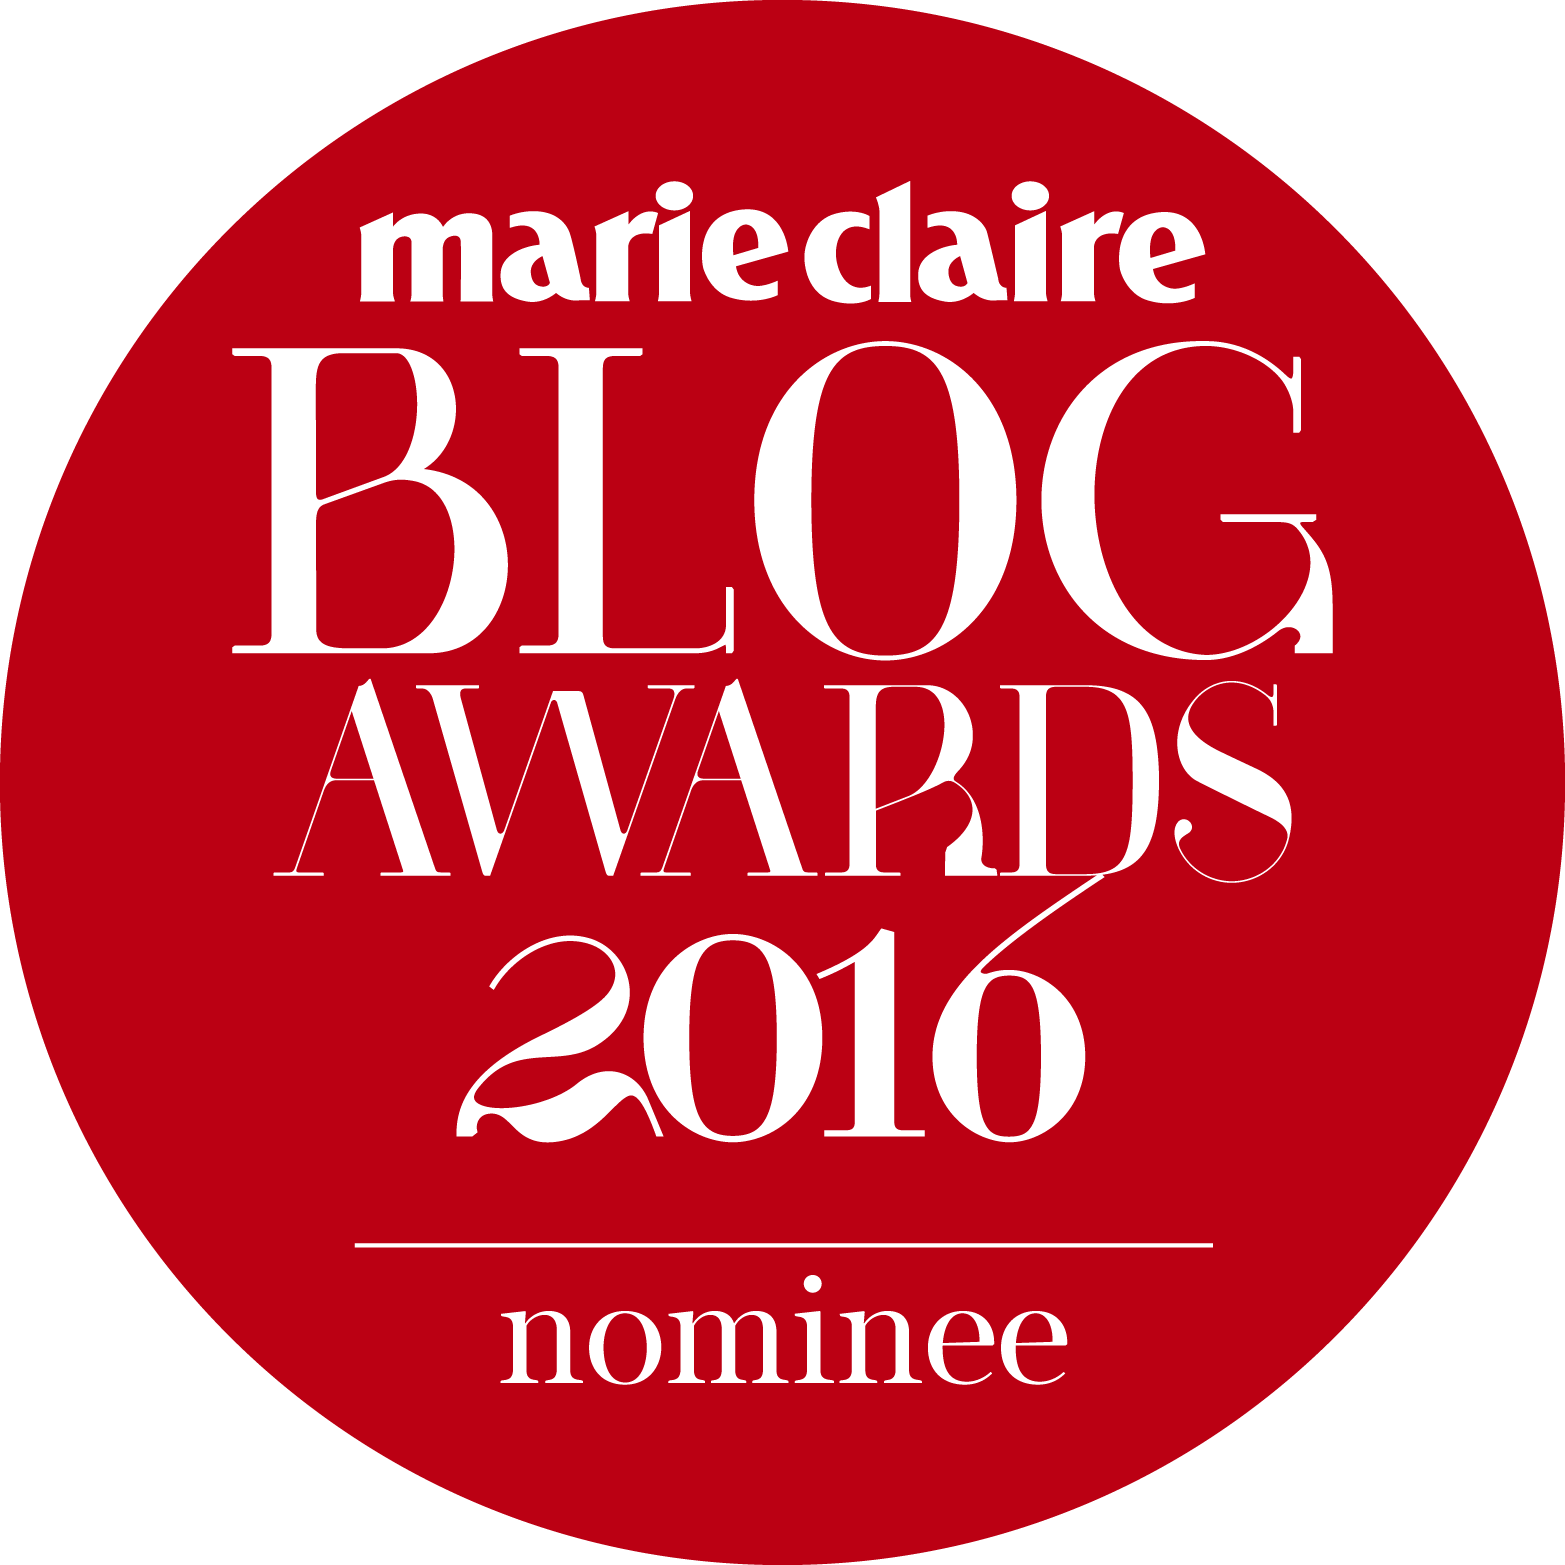 Marie Claire Blog Awards 2016 Nominee